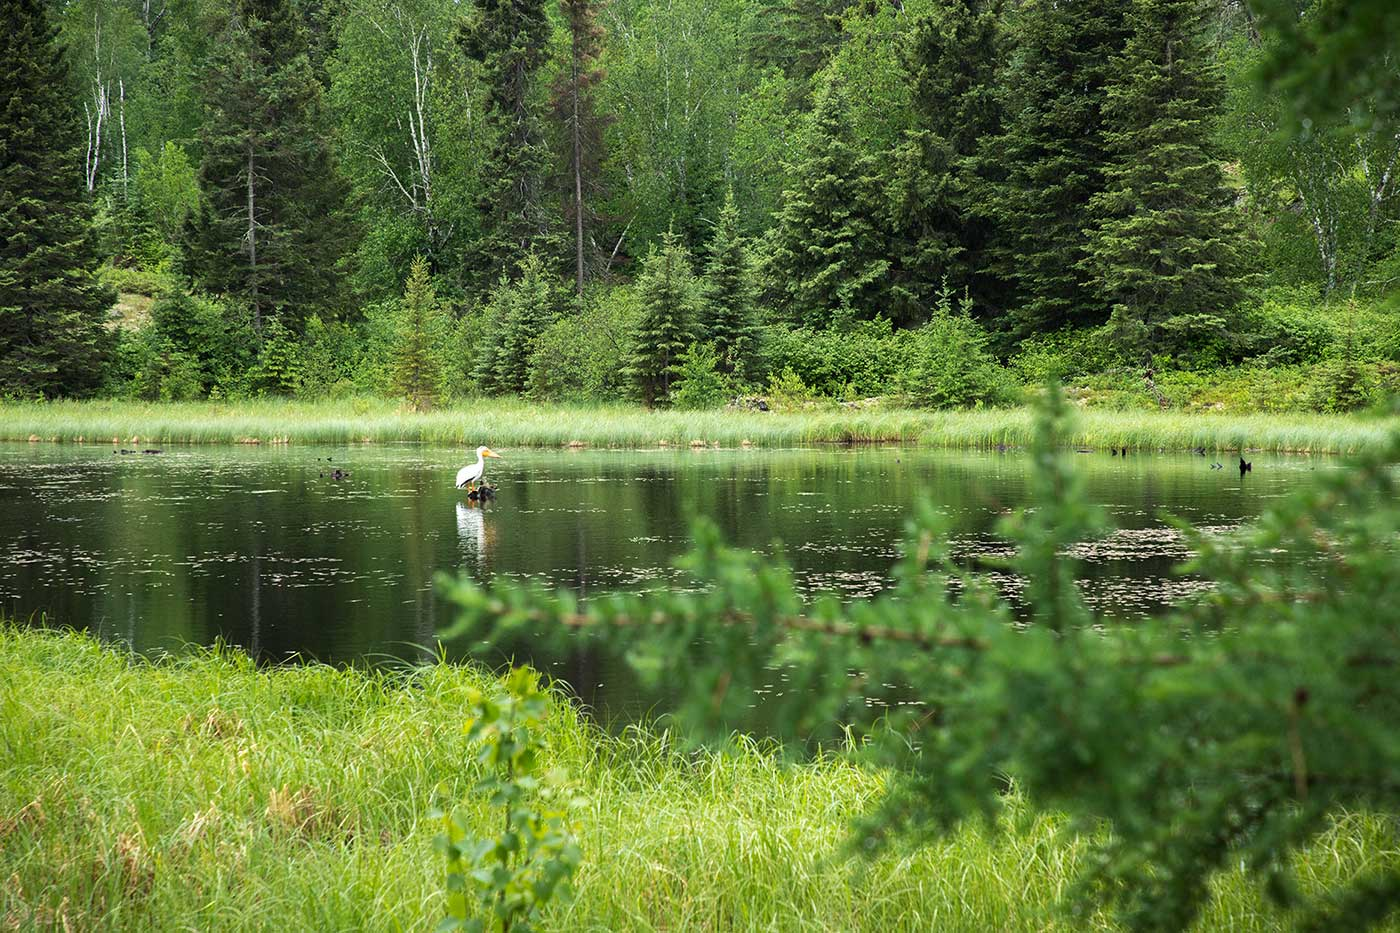 North American White Pelican fish the waters of Whiteshell Forest, close to the location of the 1967 'Falcon Lake Incident.' Beside the highway nearby are a series of campsites, restaurants, and UFO-themed souvenir shops.